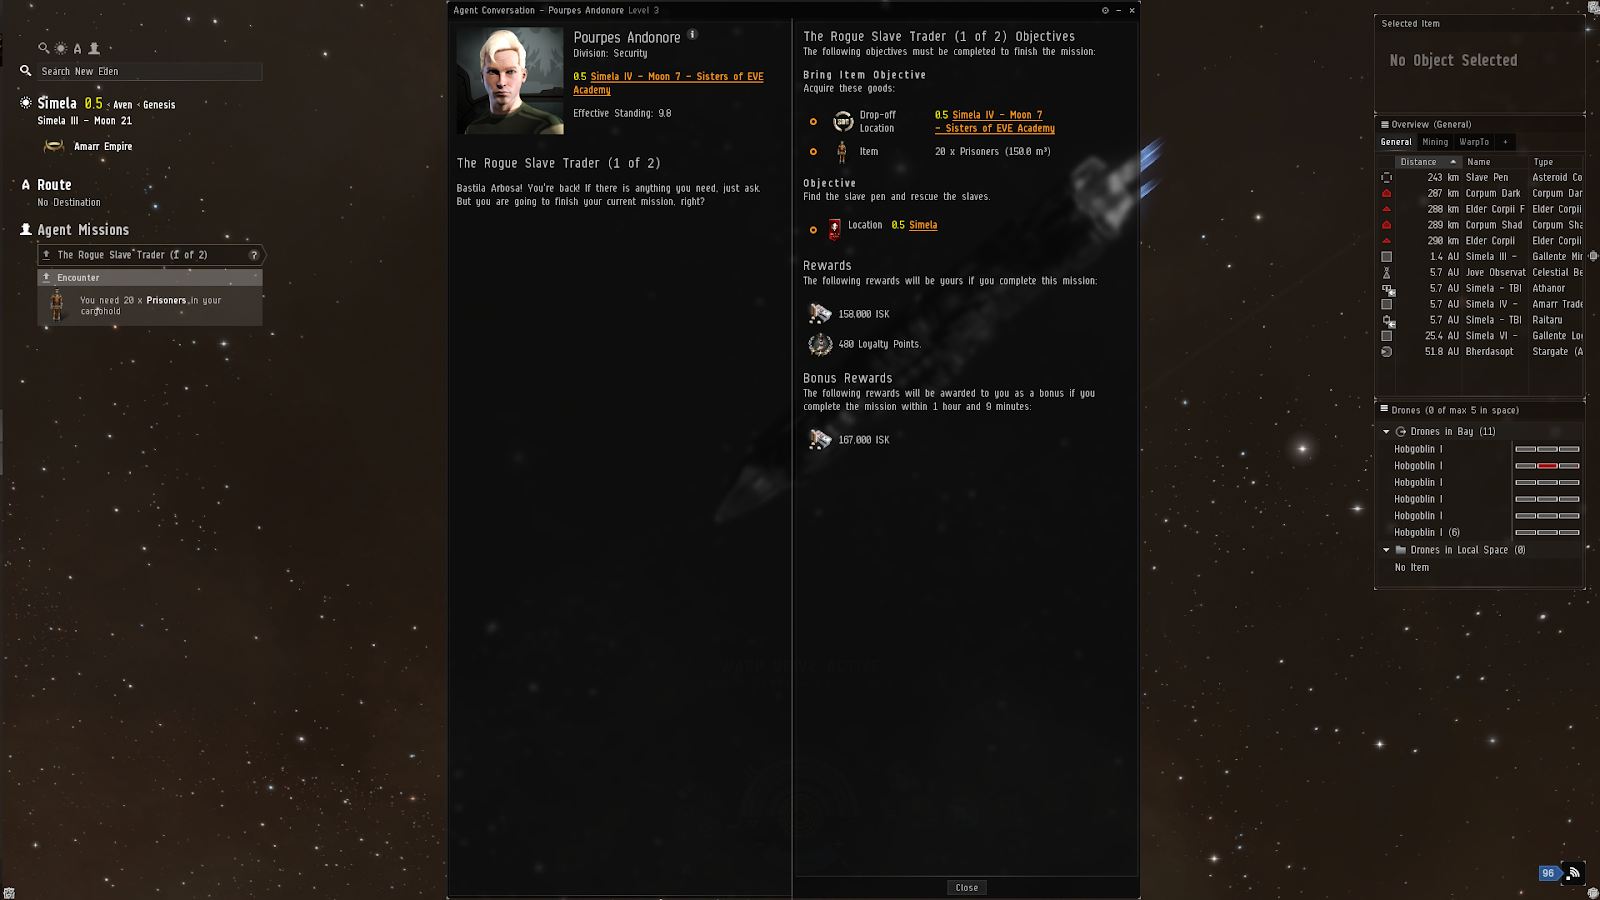 The Rogue Slave Trader (1/2) - EVE online Security Mission Level 3